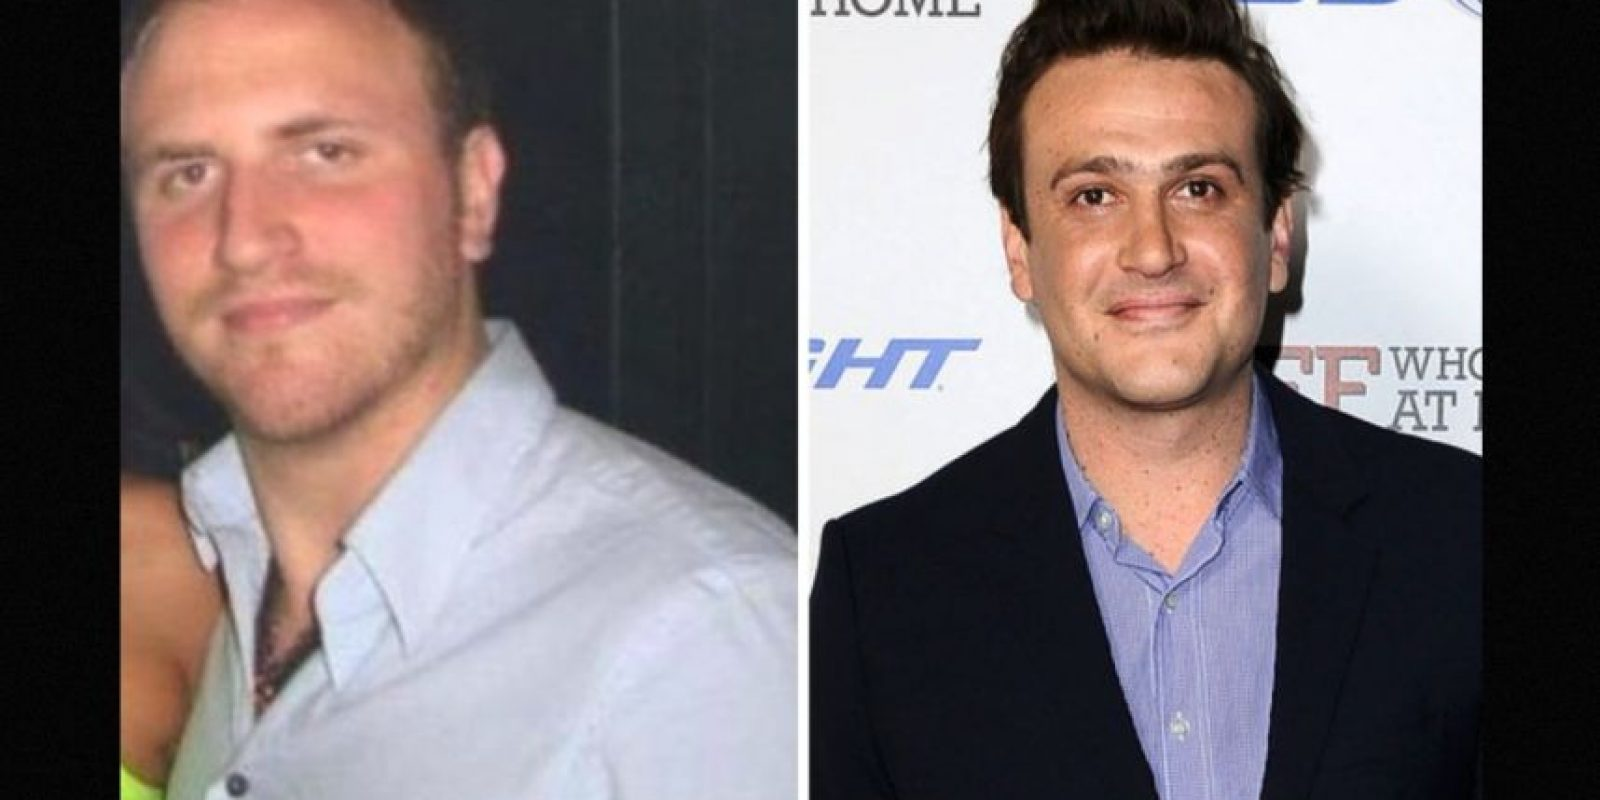 Igual a Jason Segel Foto: Reddit/Getty